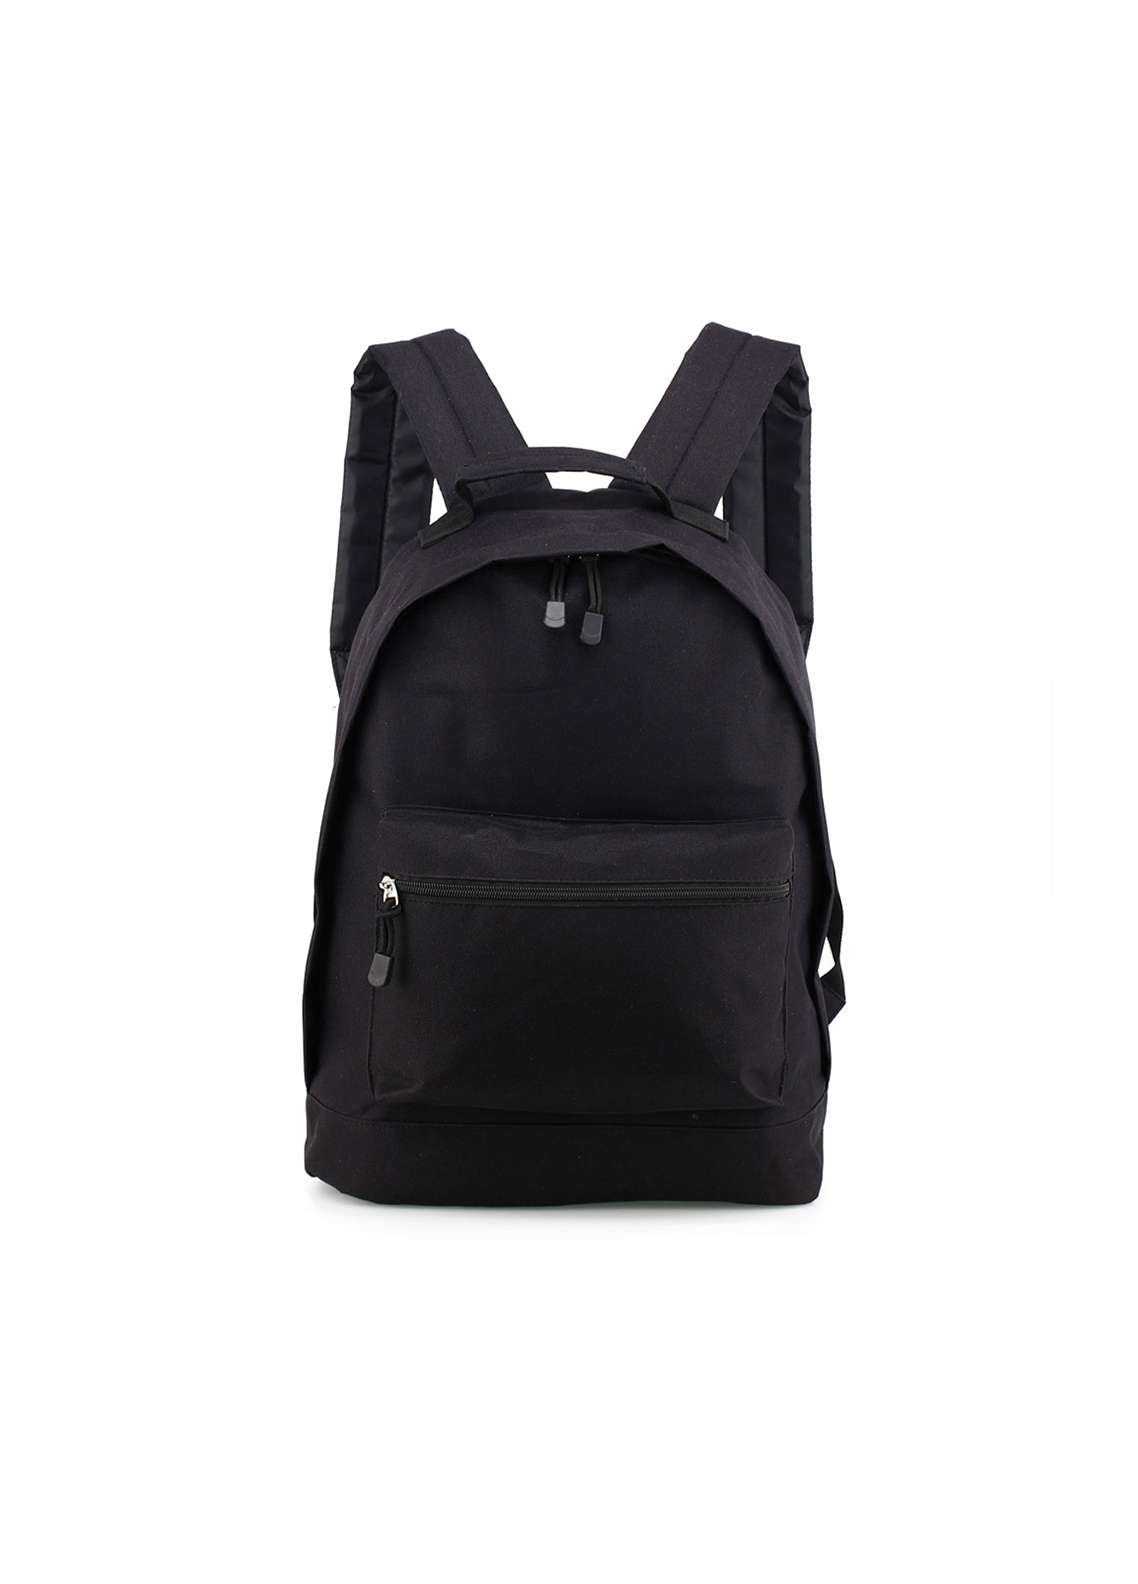 Anna Grace London Faux Leather Backpack School Bags  for Unisex  Black with Plain Texture